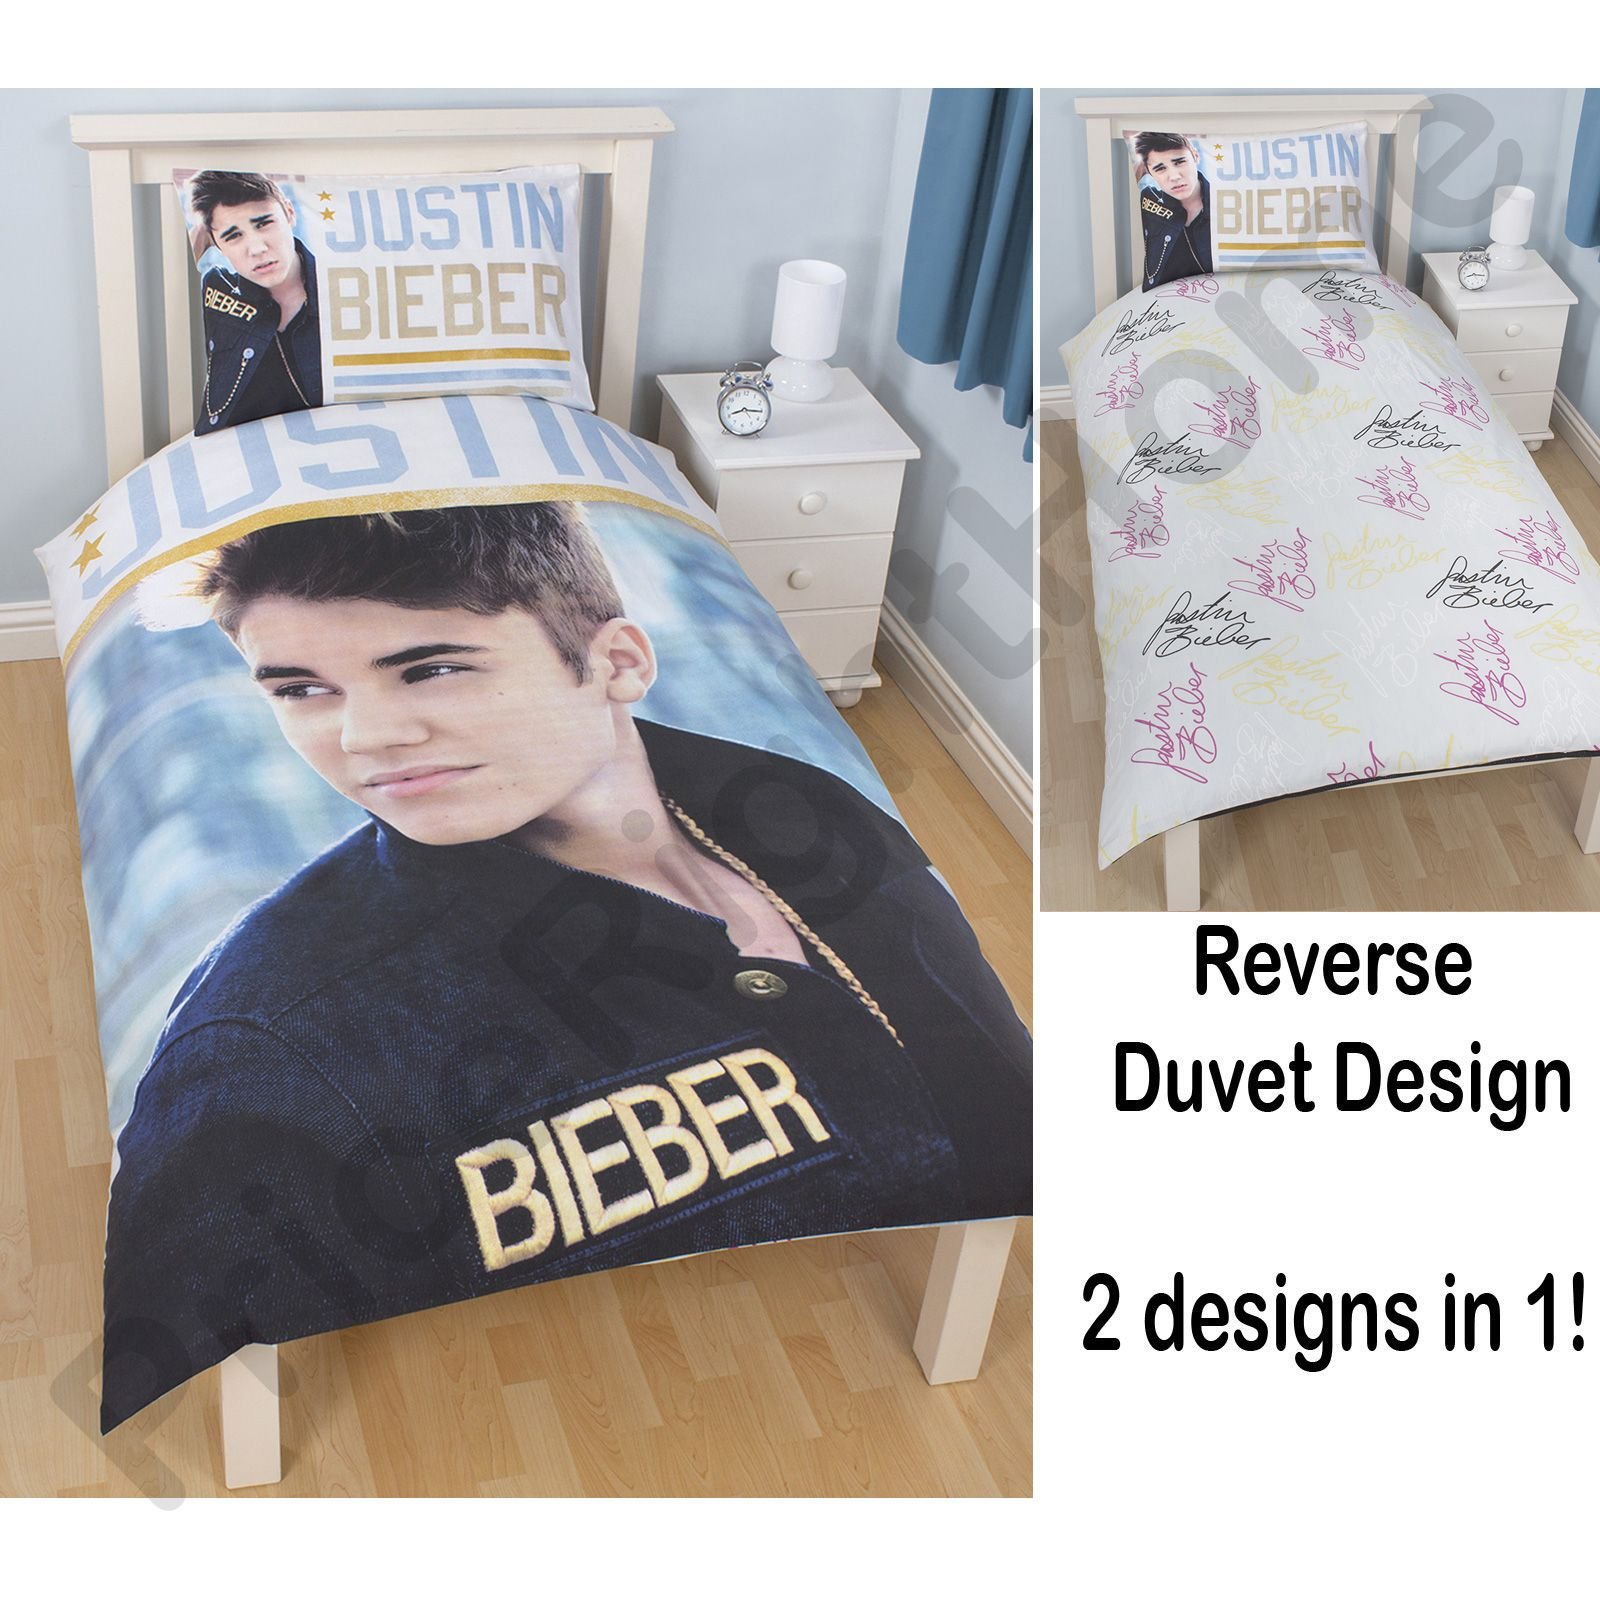 Justin bieber stars duvet cover set new official 2 in 1 for Justin bieber bedroom ideas